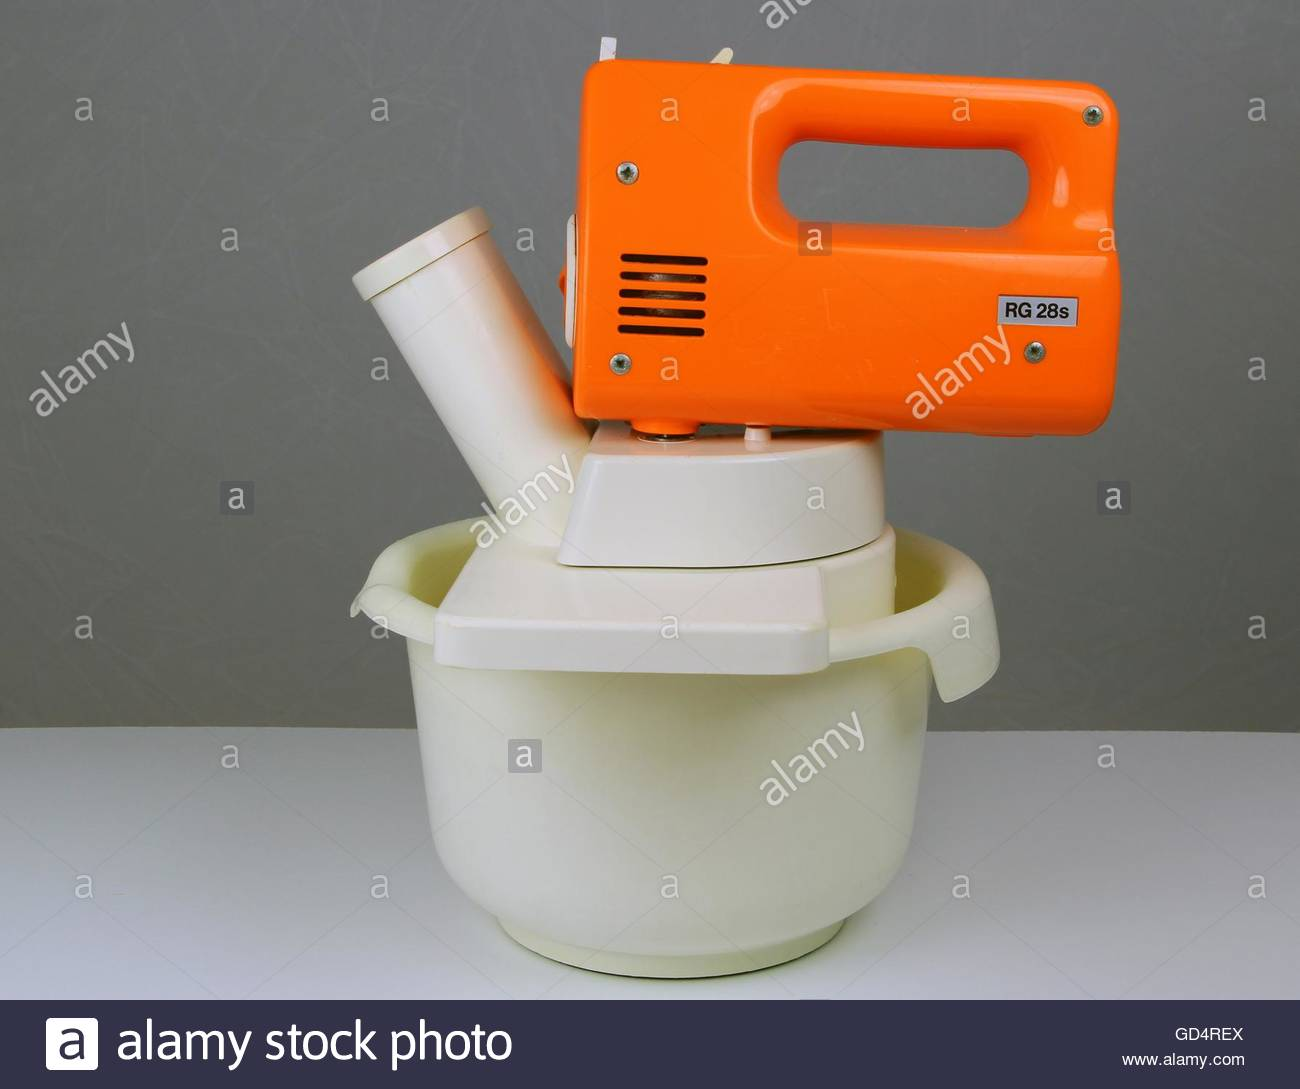 Accessory Units Stock Photos Images Alamy Mixer Natonal Omega Household Kitchen Appliances Electrical Rg 28s With Unit For